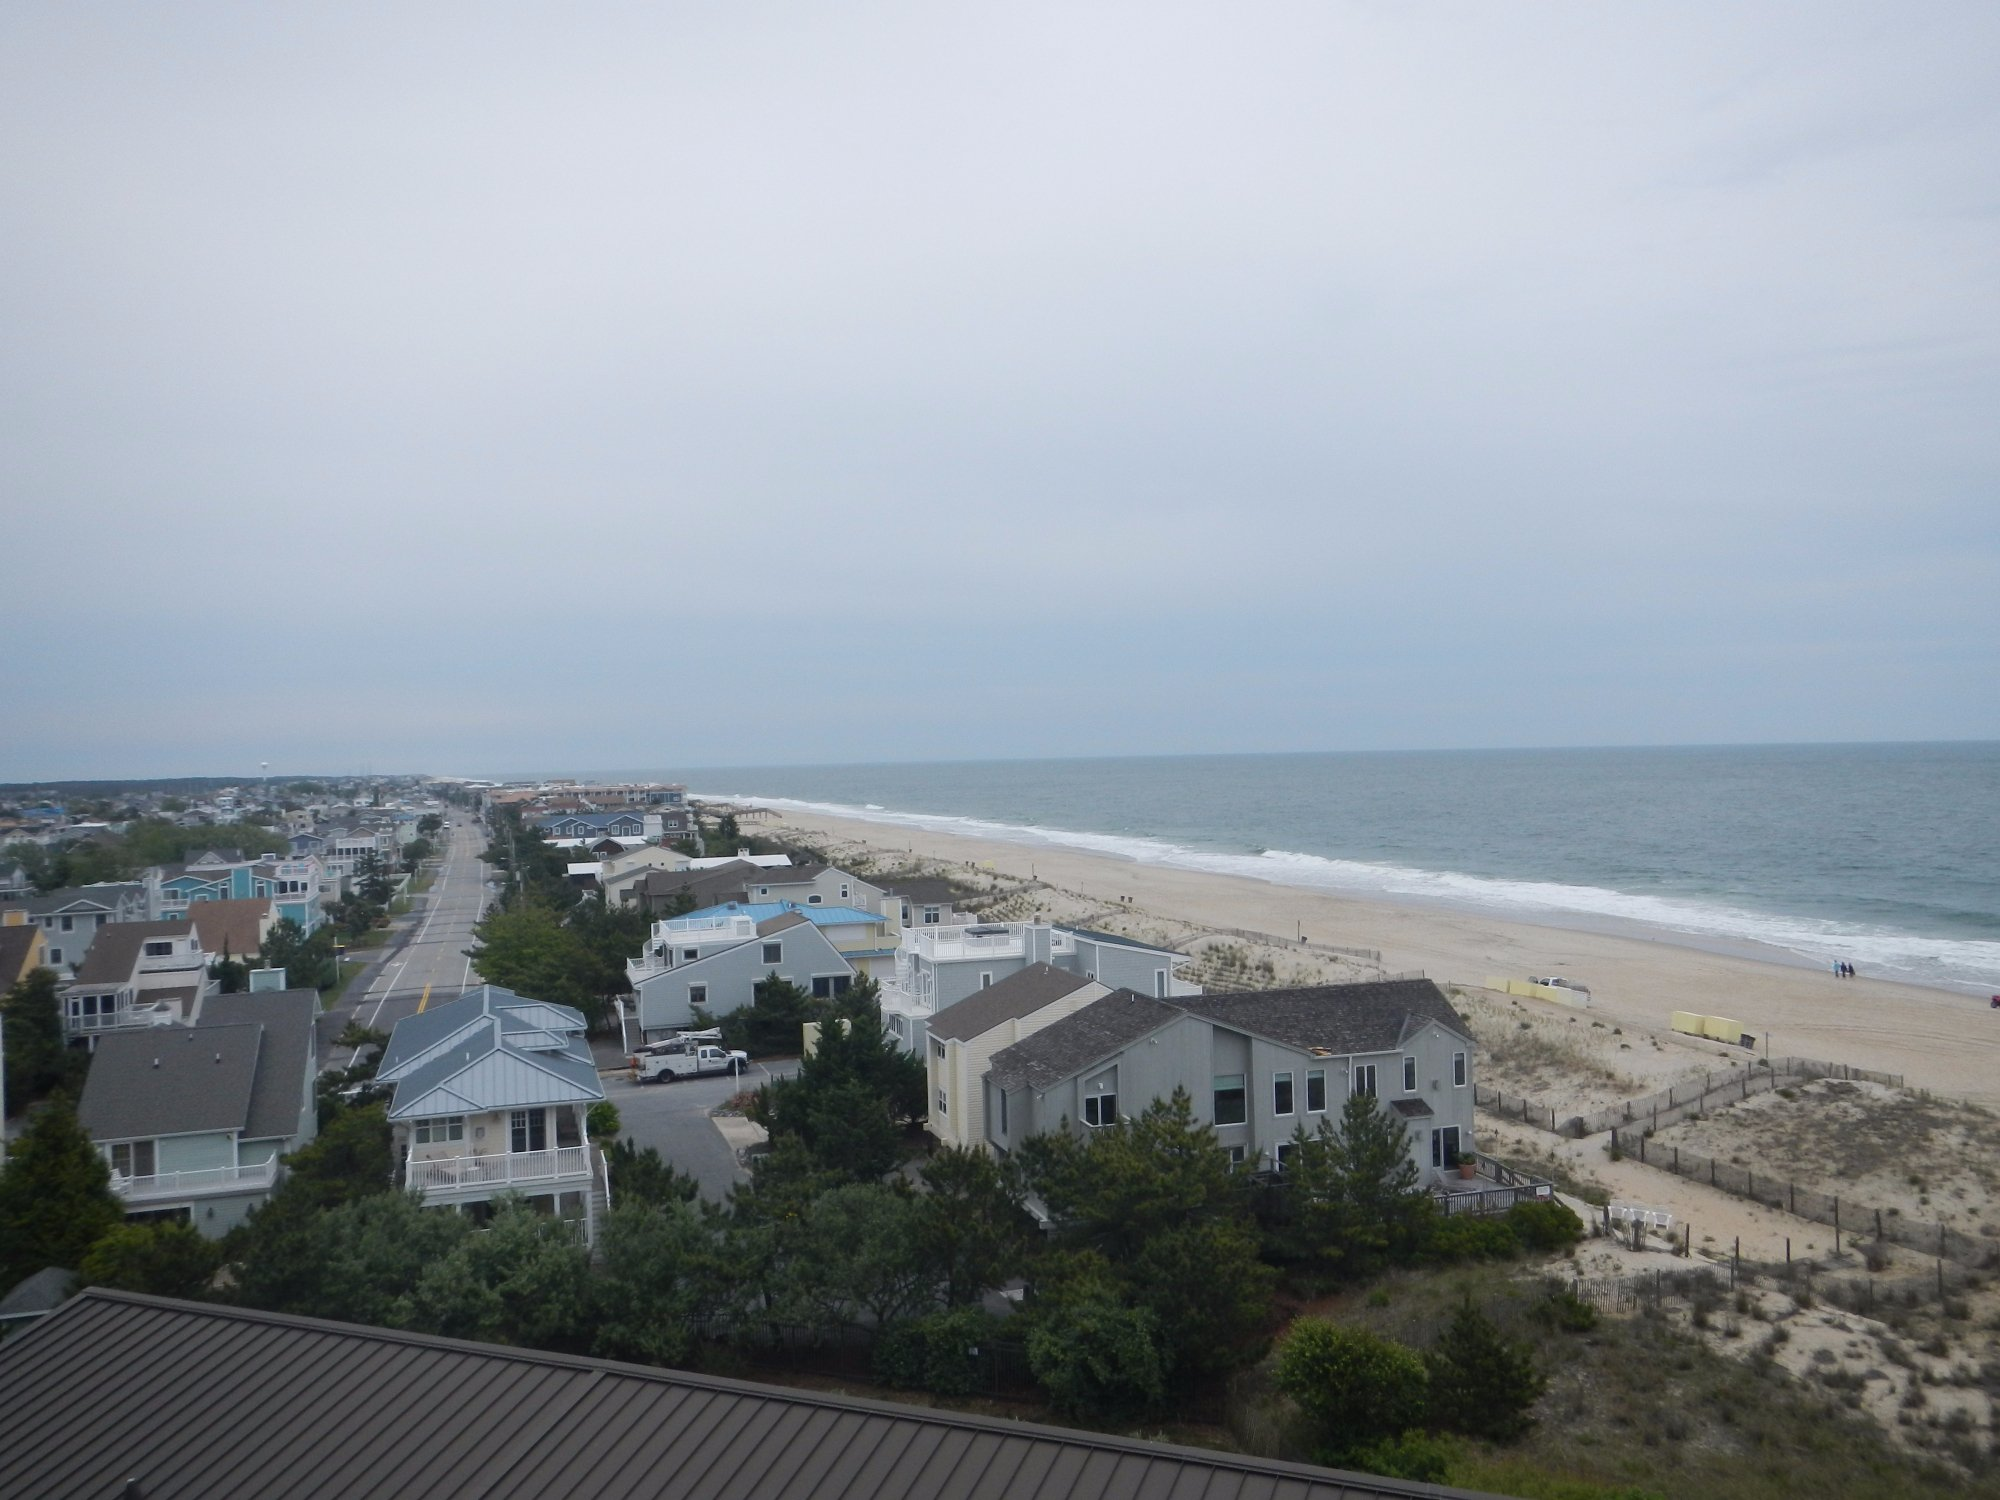 Picture of Bethany Beach, Delaware (from Sea Colony Annapolis House balcony)